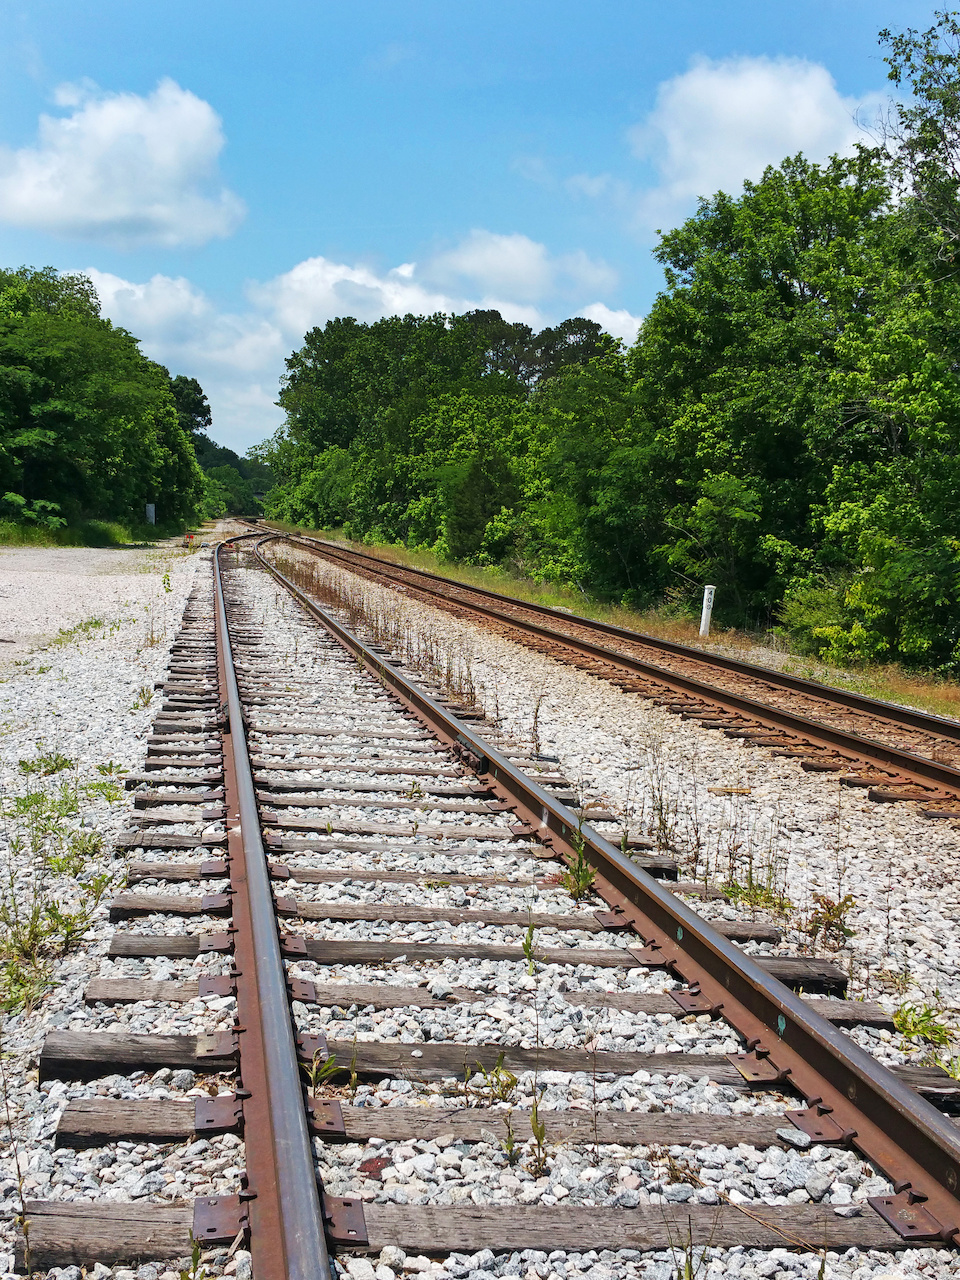 A view of the railroad tracks underneath a blue sky